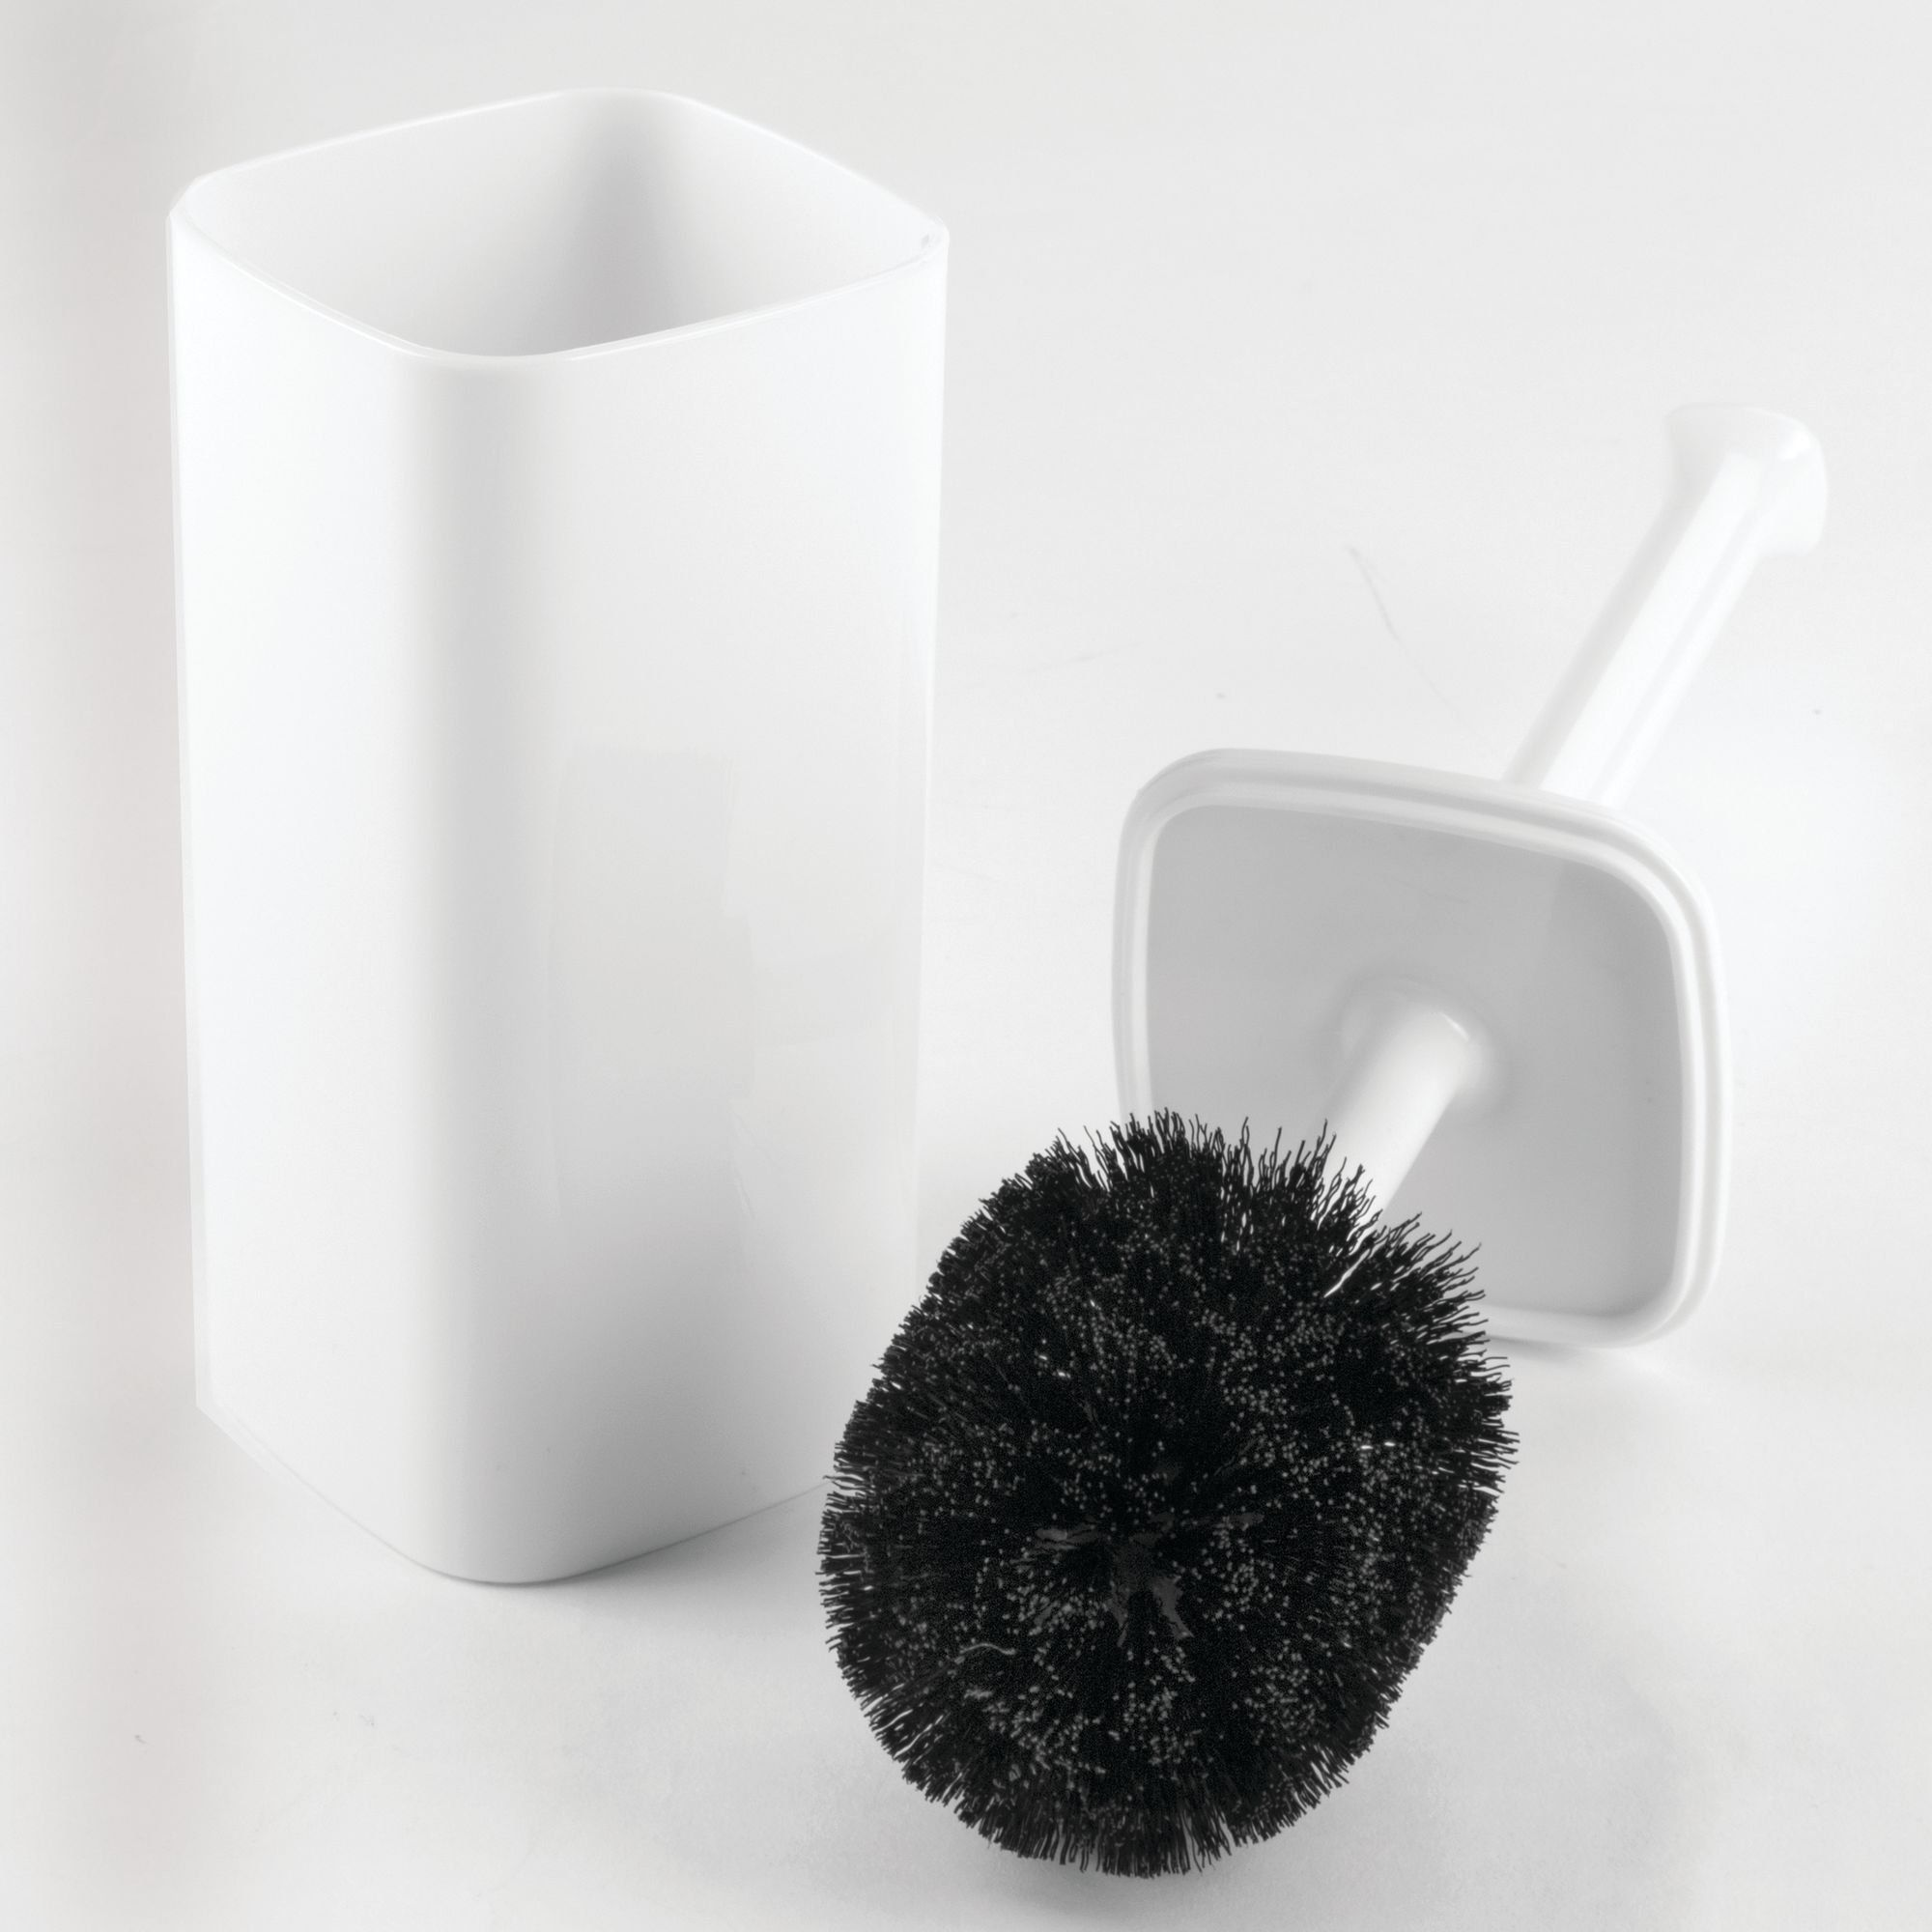 Covered Brush White 2 Pack Deep Cleaning mDesign Compact Freestanding Plastic Toilet Bowl Brush and Holder for Bathroom Storage and Organization Sturdy Space Saving